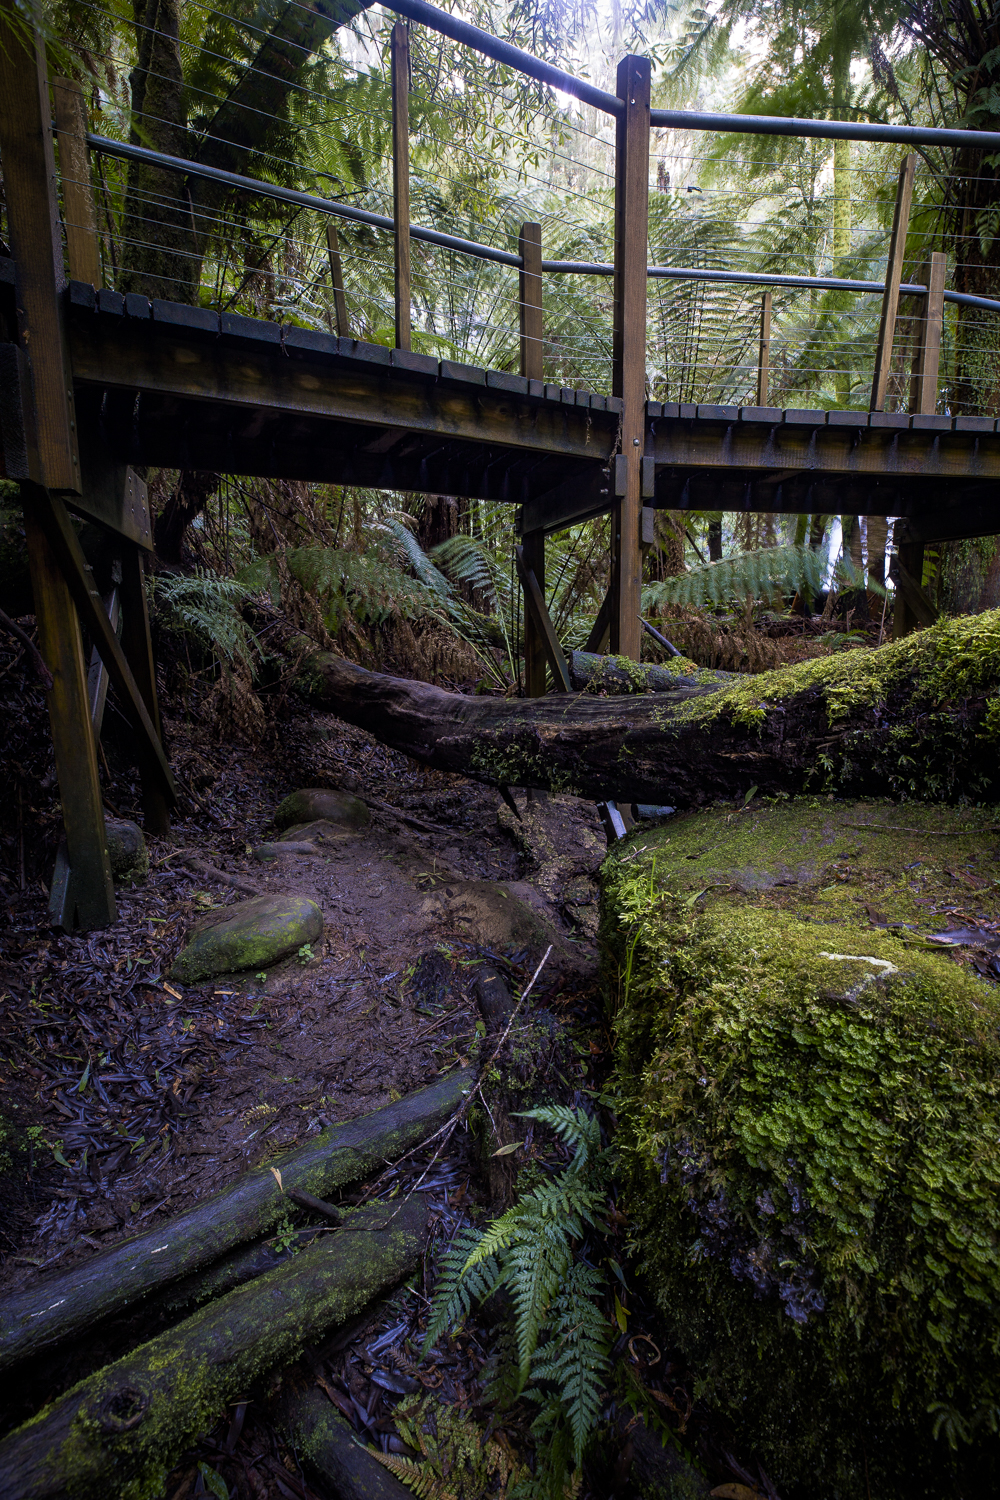 The path that has been carved beneath the boardwalk to the viewing platform. Visitors take this path or climb the barriers. No moss remains on this log as visitors must climb it to gain access.